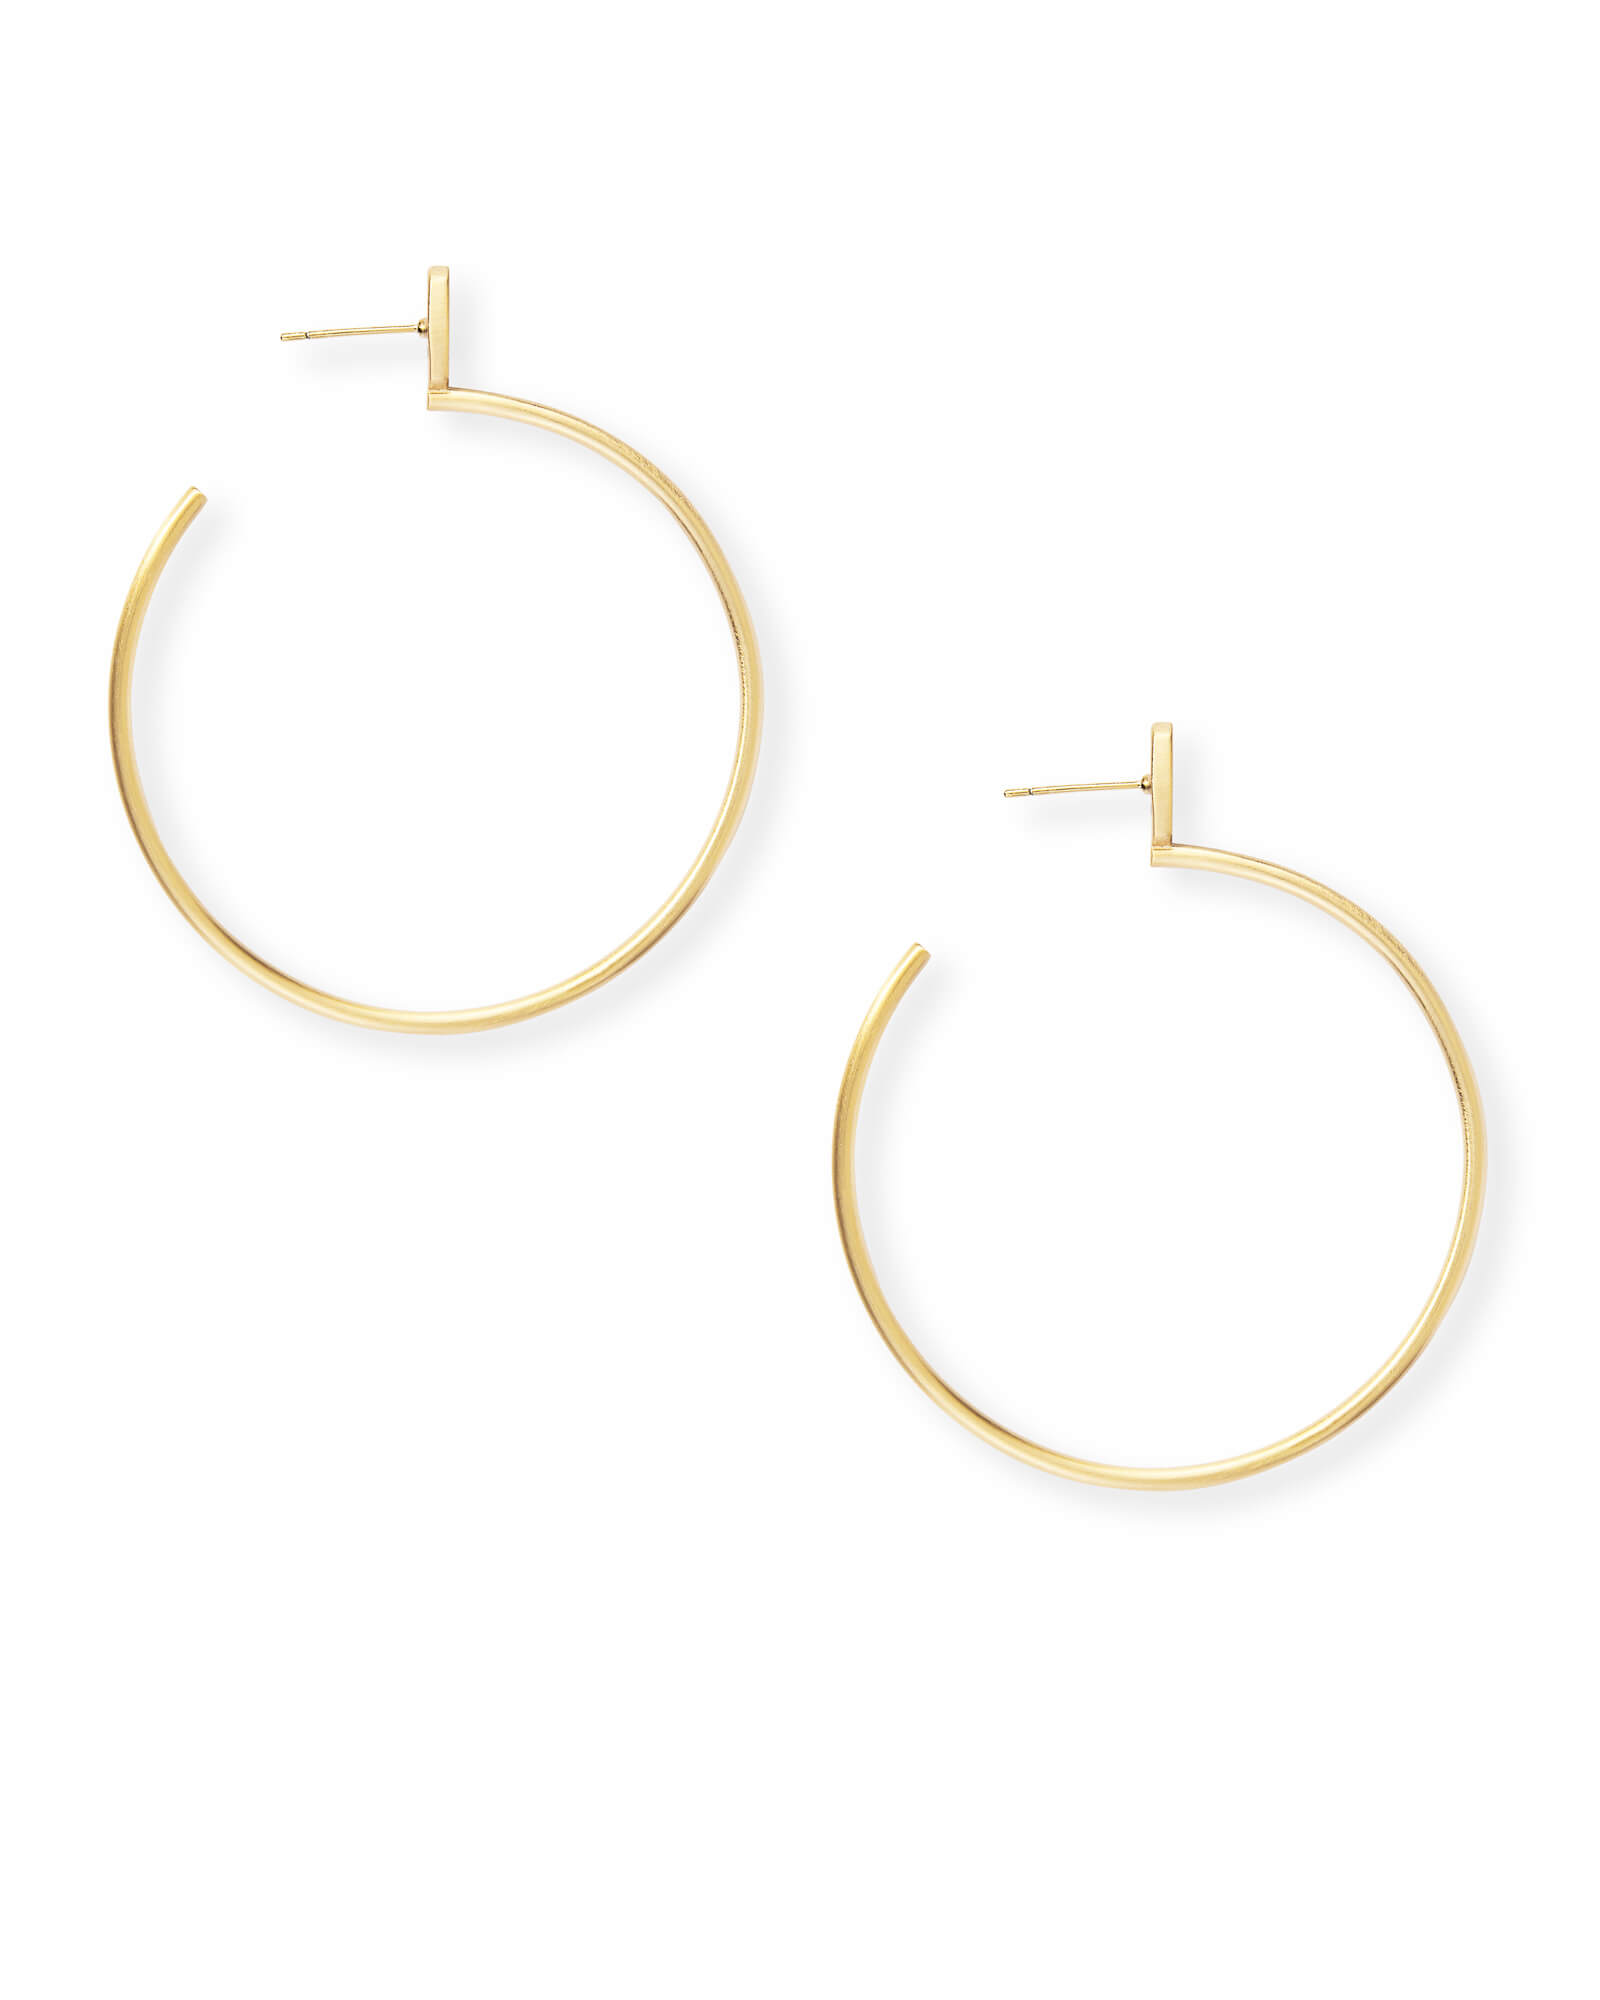 Pepper Hoop Earrings in Gold